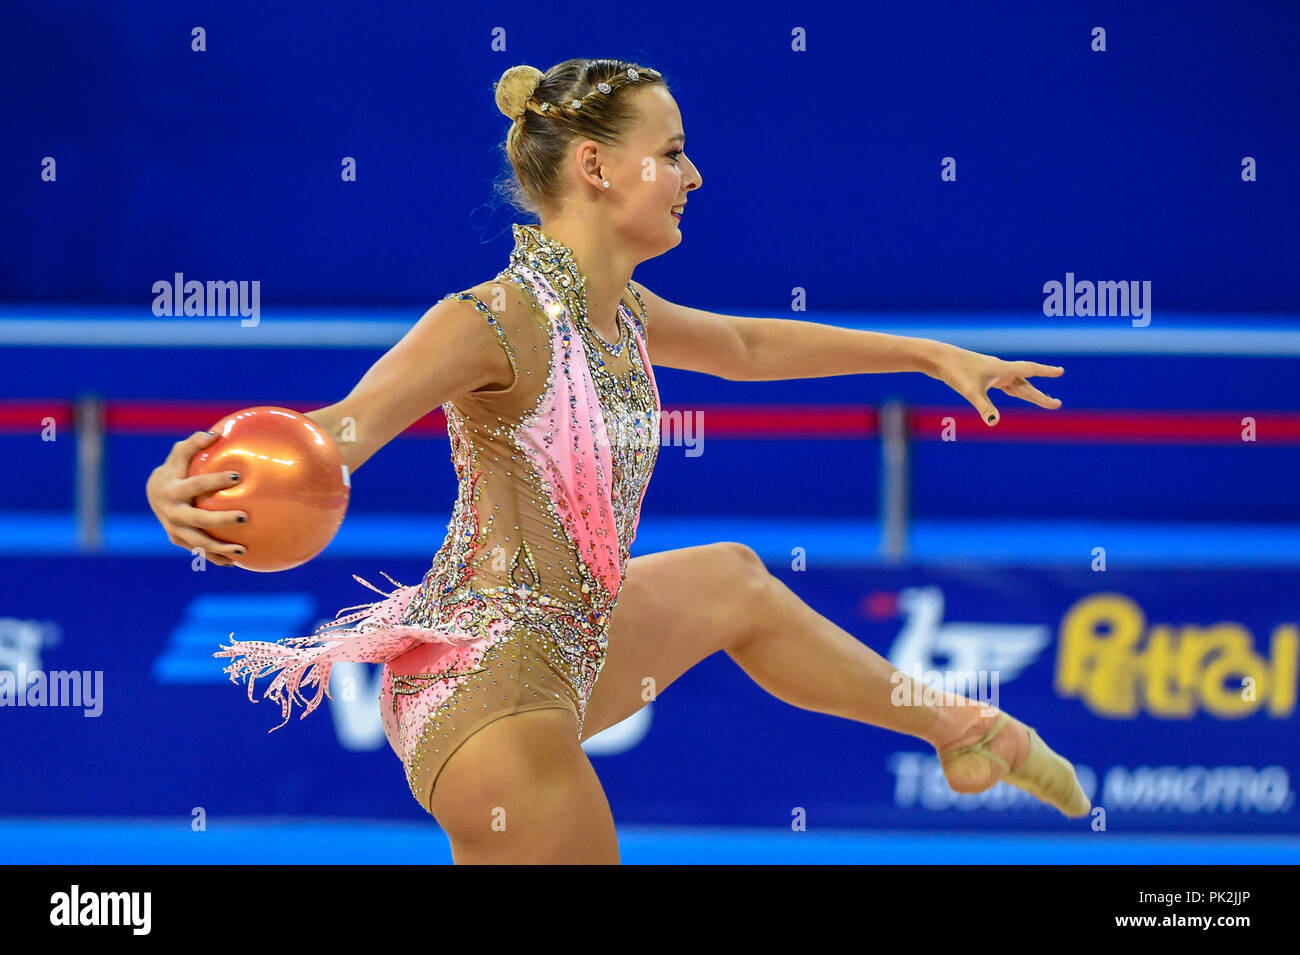 Sofia, Bulgaria. September 10, 2018: Nicol Ruprecht of Austria during Rhythmic Gymnastics World Championships at the Arena Armeec in Sofia at the 36th FIG Rhythmic Gymnastics World Championships. Ulrik Pedersen/CSM Credit: Cal Sport Media/Alamy Live News - Stock Image